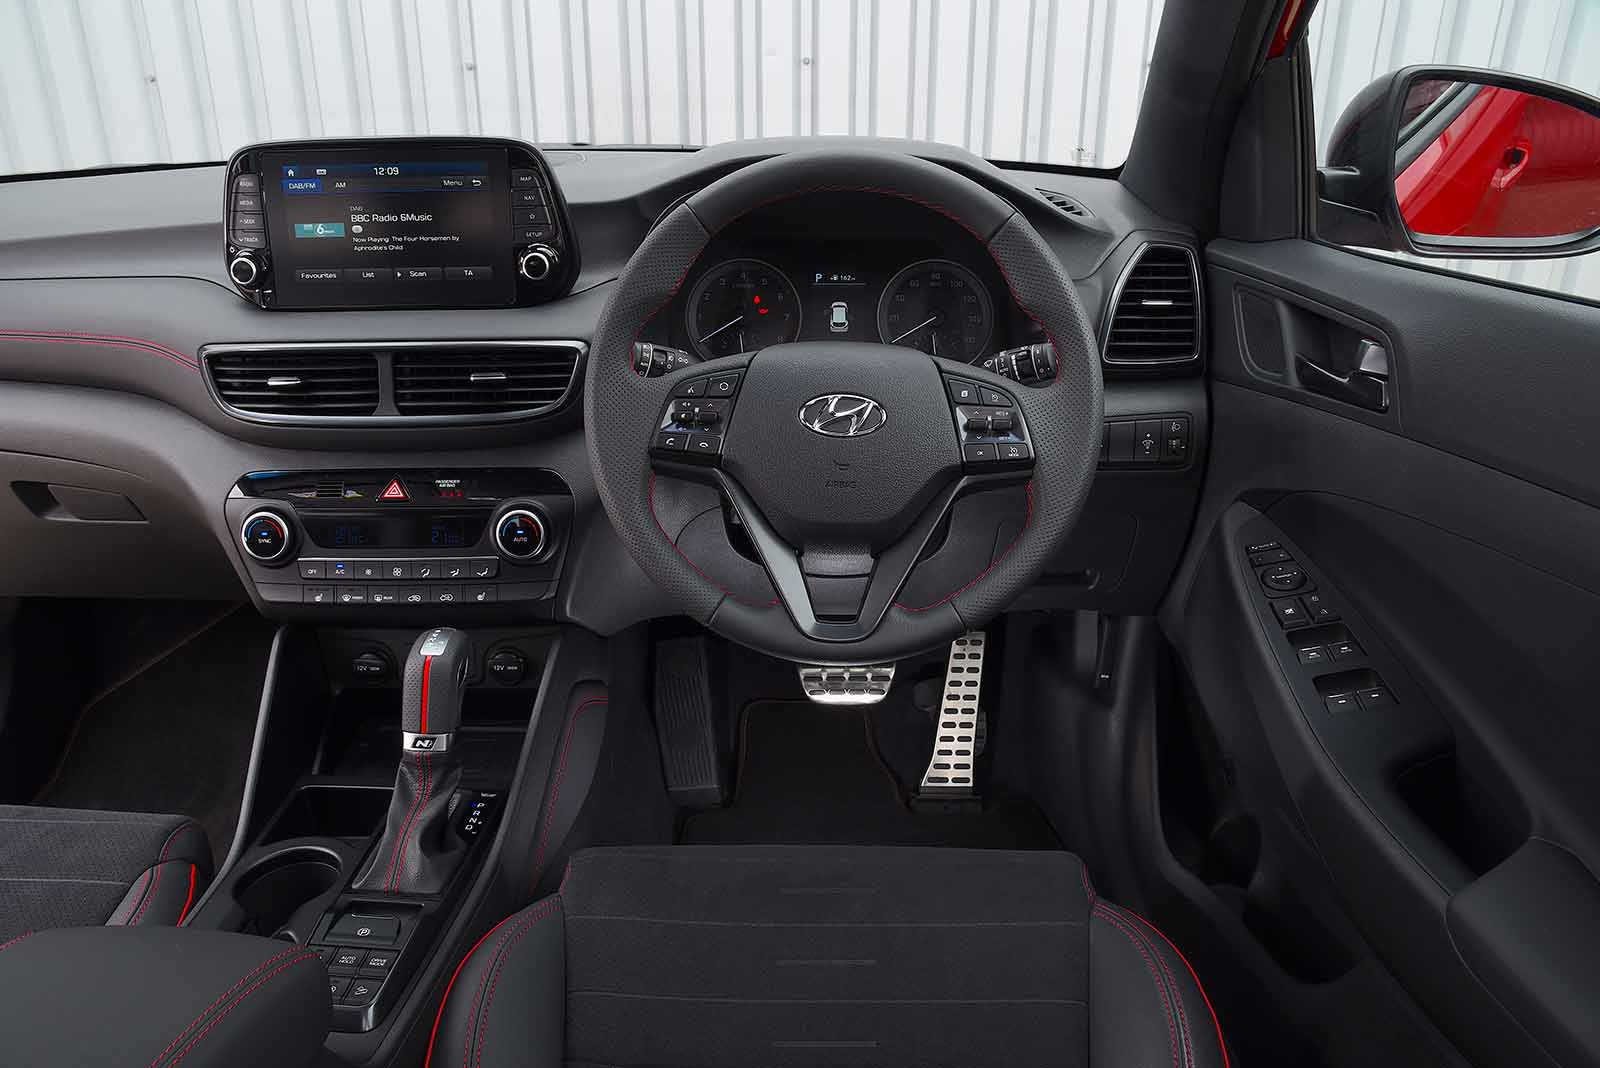 Hyundai Tucson Interior, Sat Nav, Dashboard | What Car?